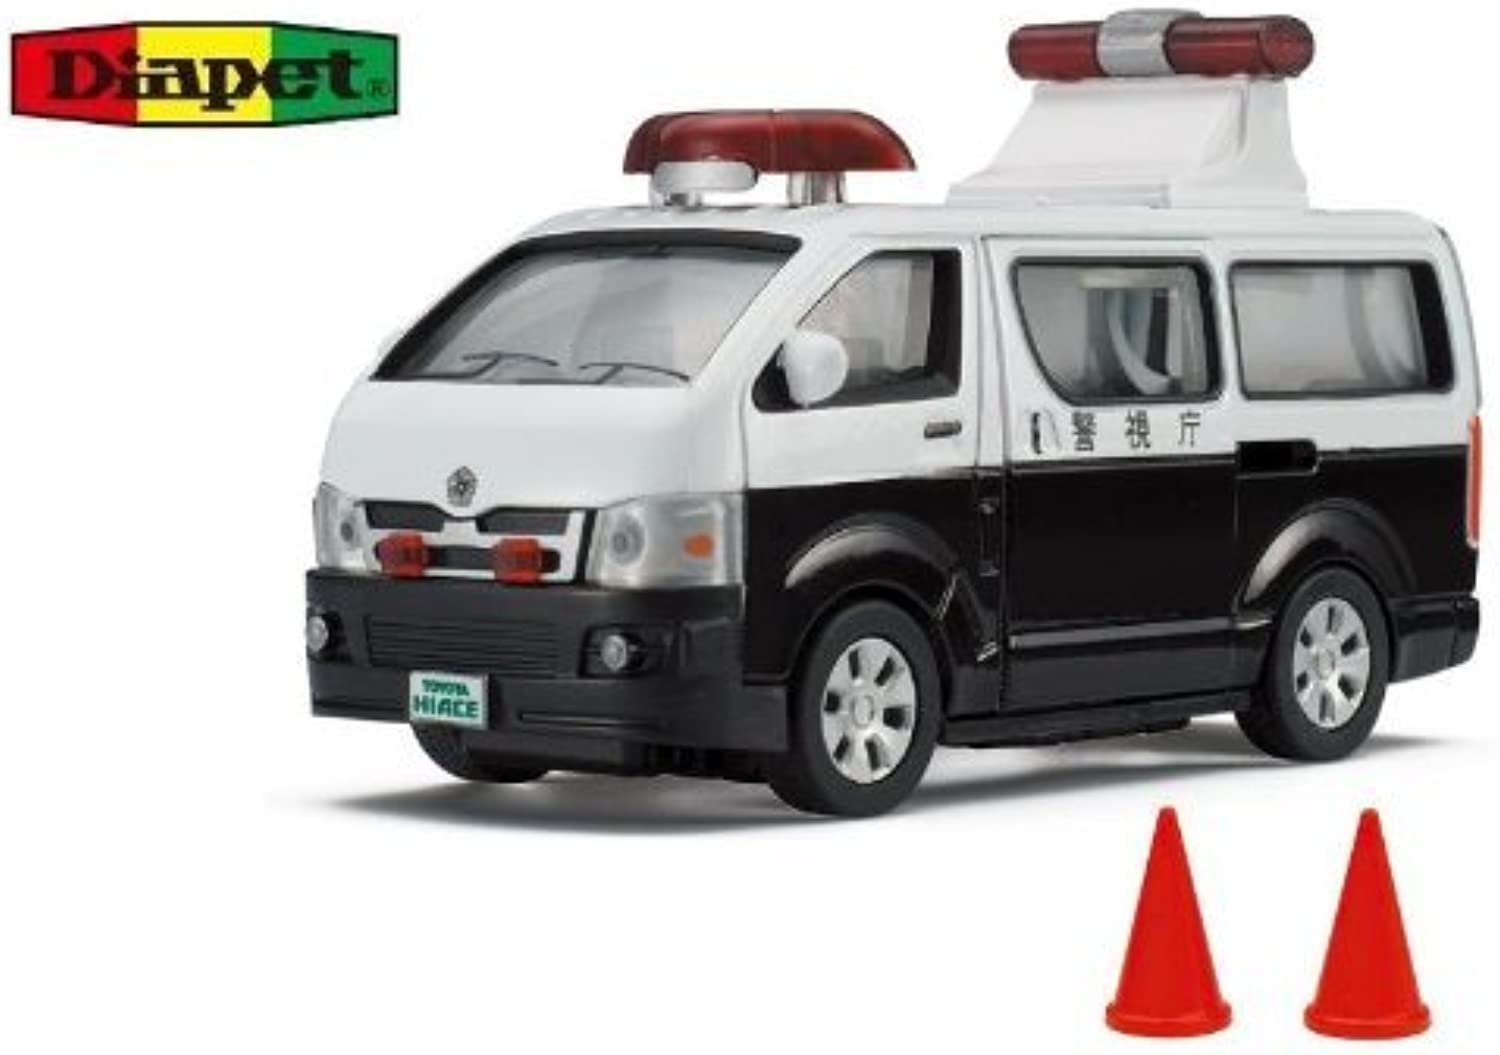 Diamond pet DK3107 1 36 scale police car (japan import) by Agatsuma